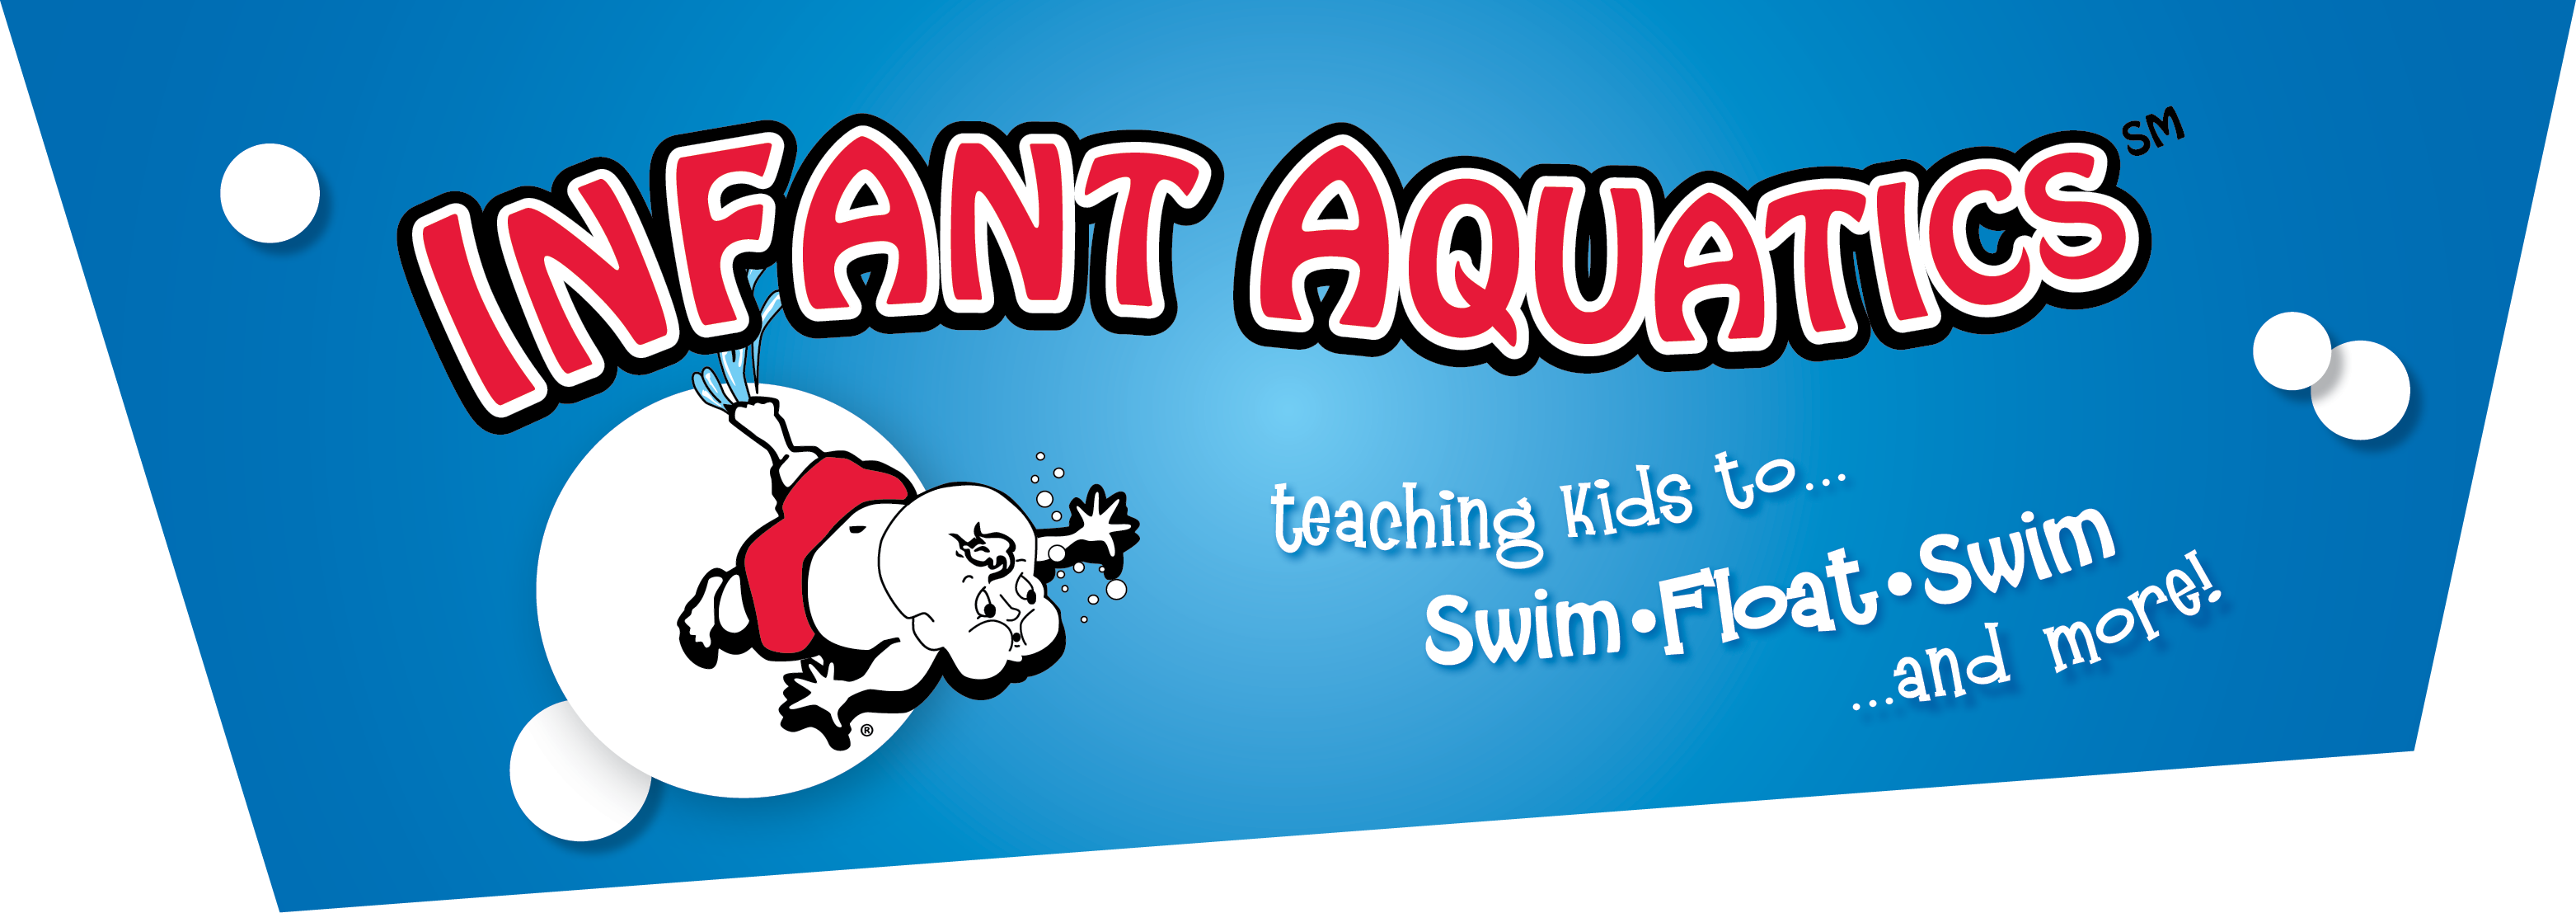 Infant Aquatics Swimming Lessons